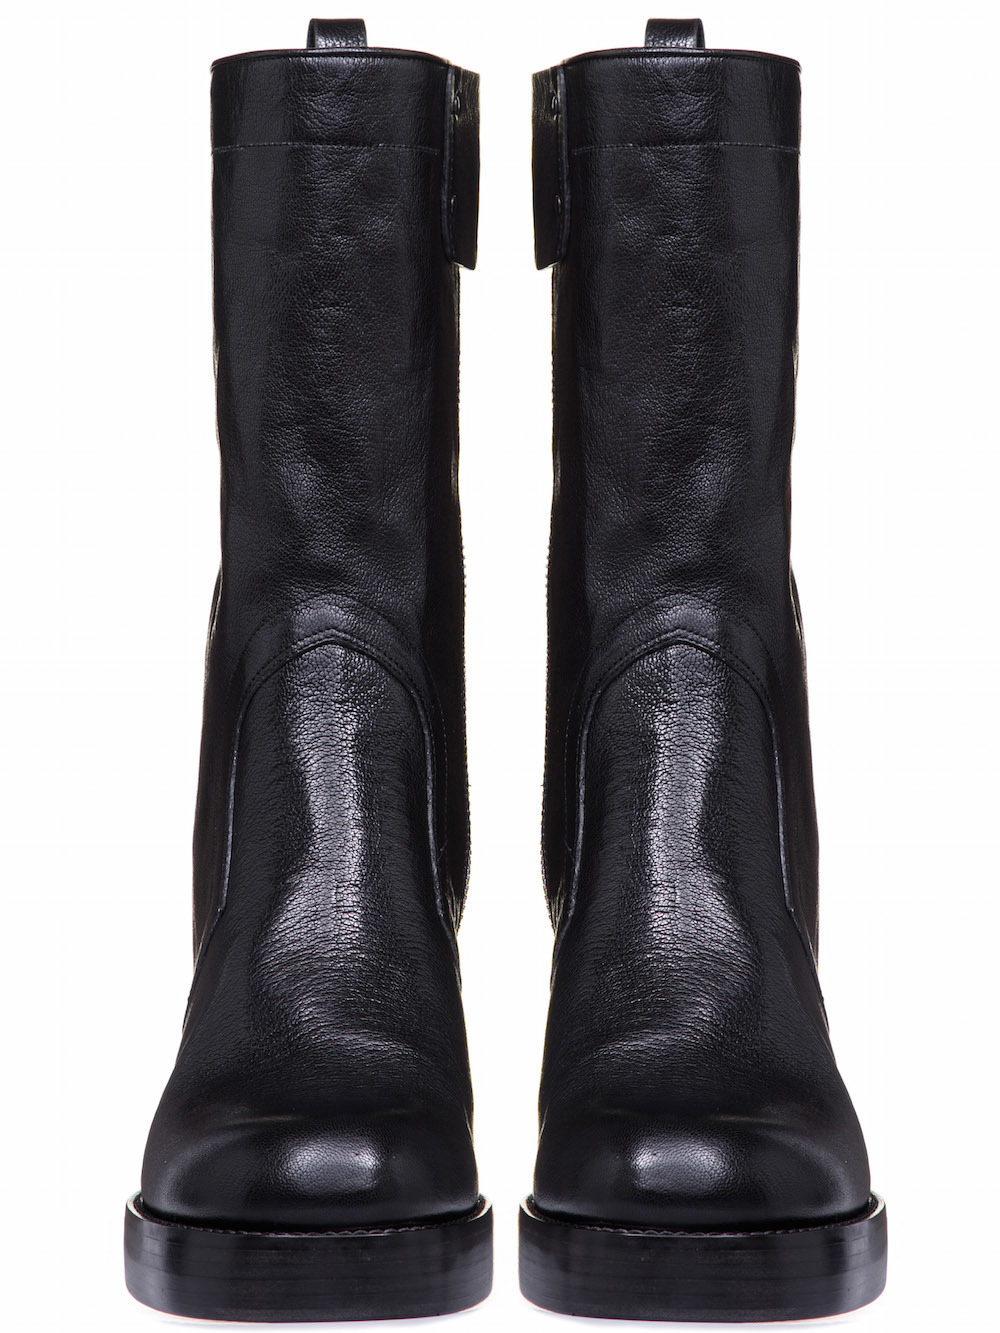 RICK OWENS CHUNKY BOOTS IN BLACK